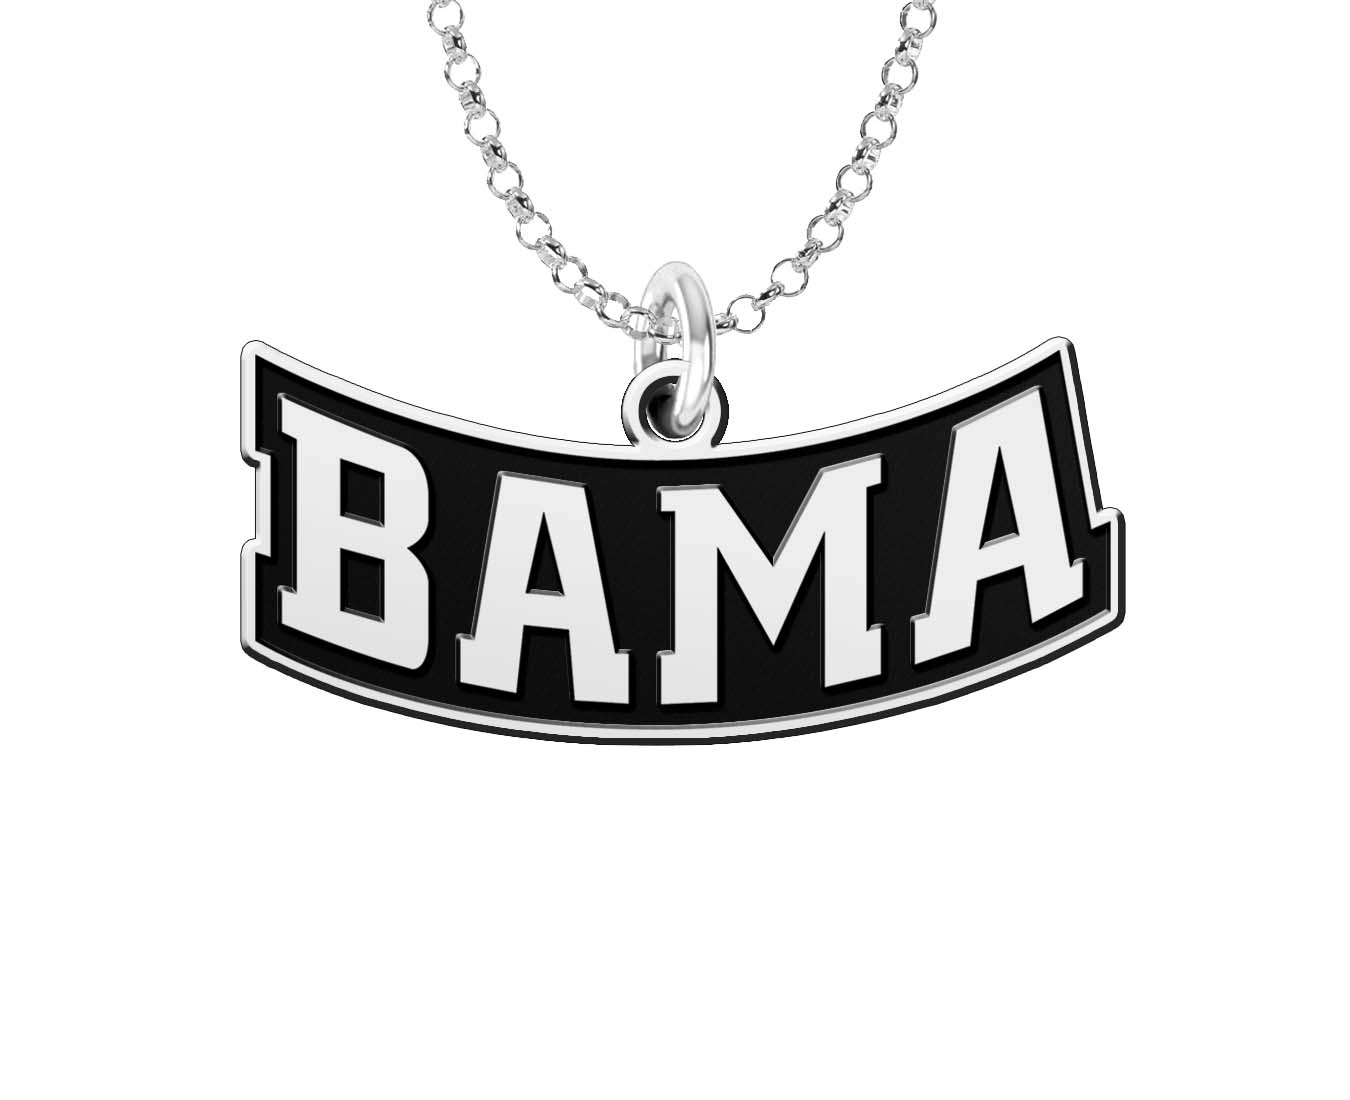 best service 05f69 103d4 Wholesale Alabama Crimson Tide Word Mark Charm Jewelry in ...